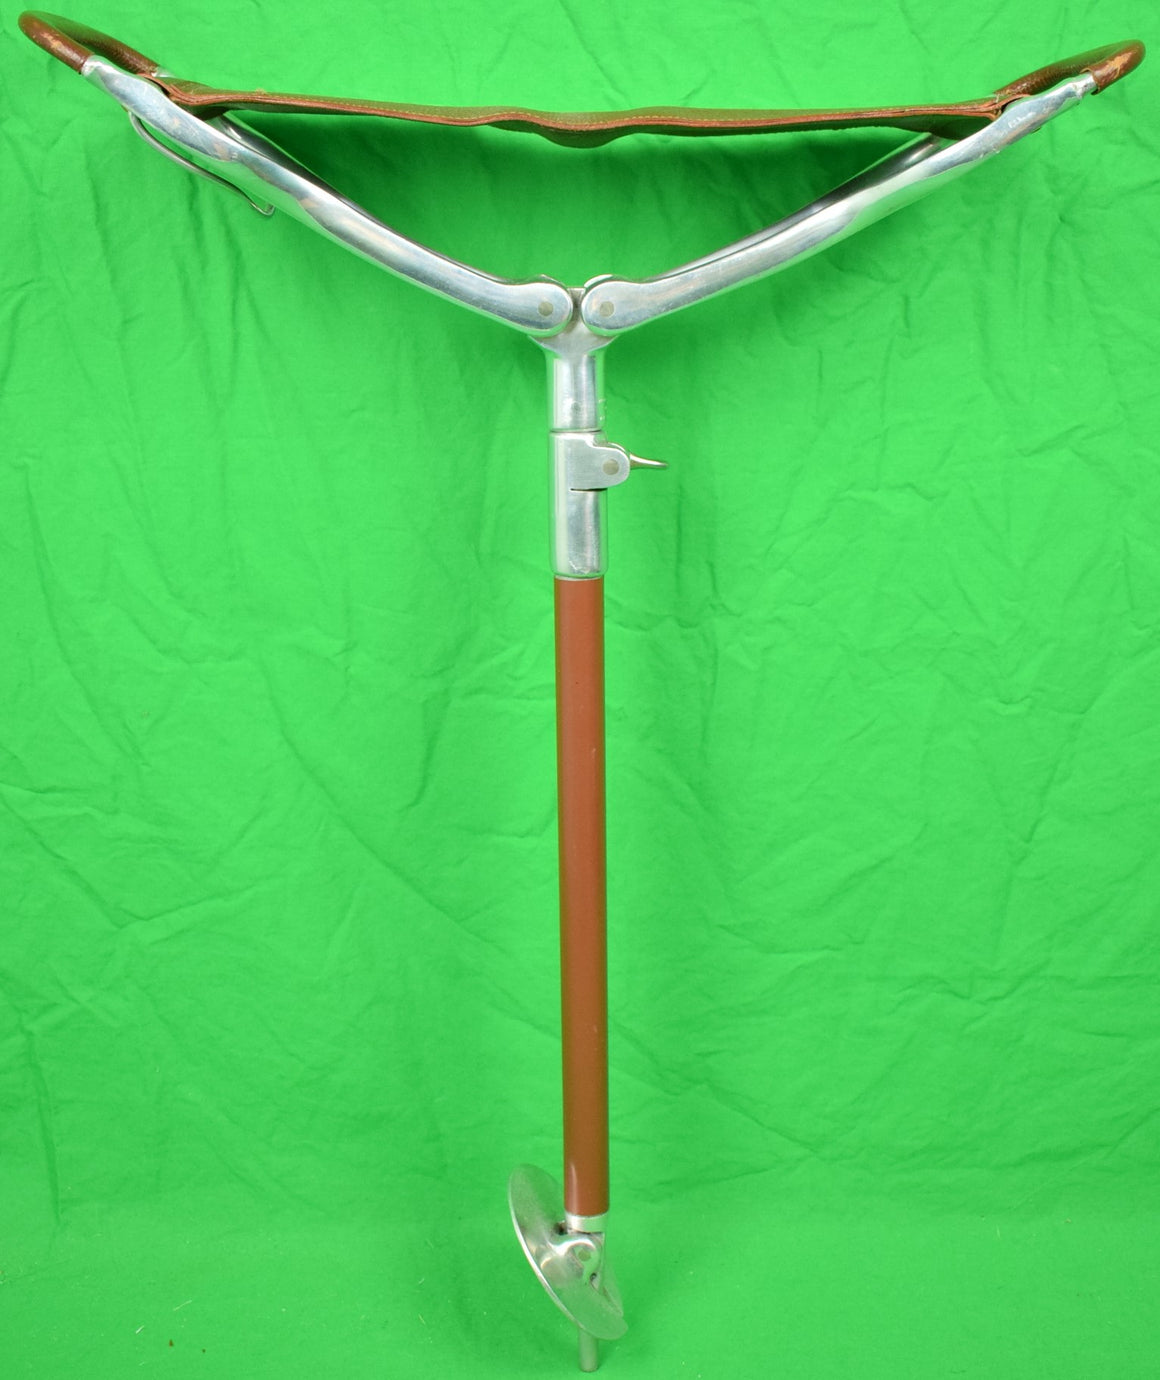 Abercrombie & Fitch Shooting Stick w/ P. L. N. Initials on Seat